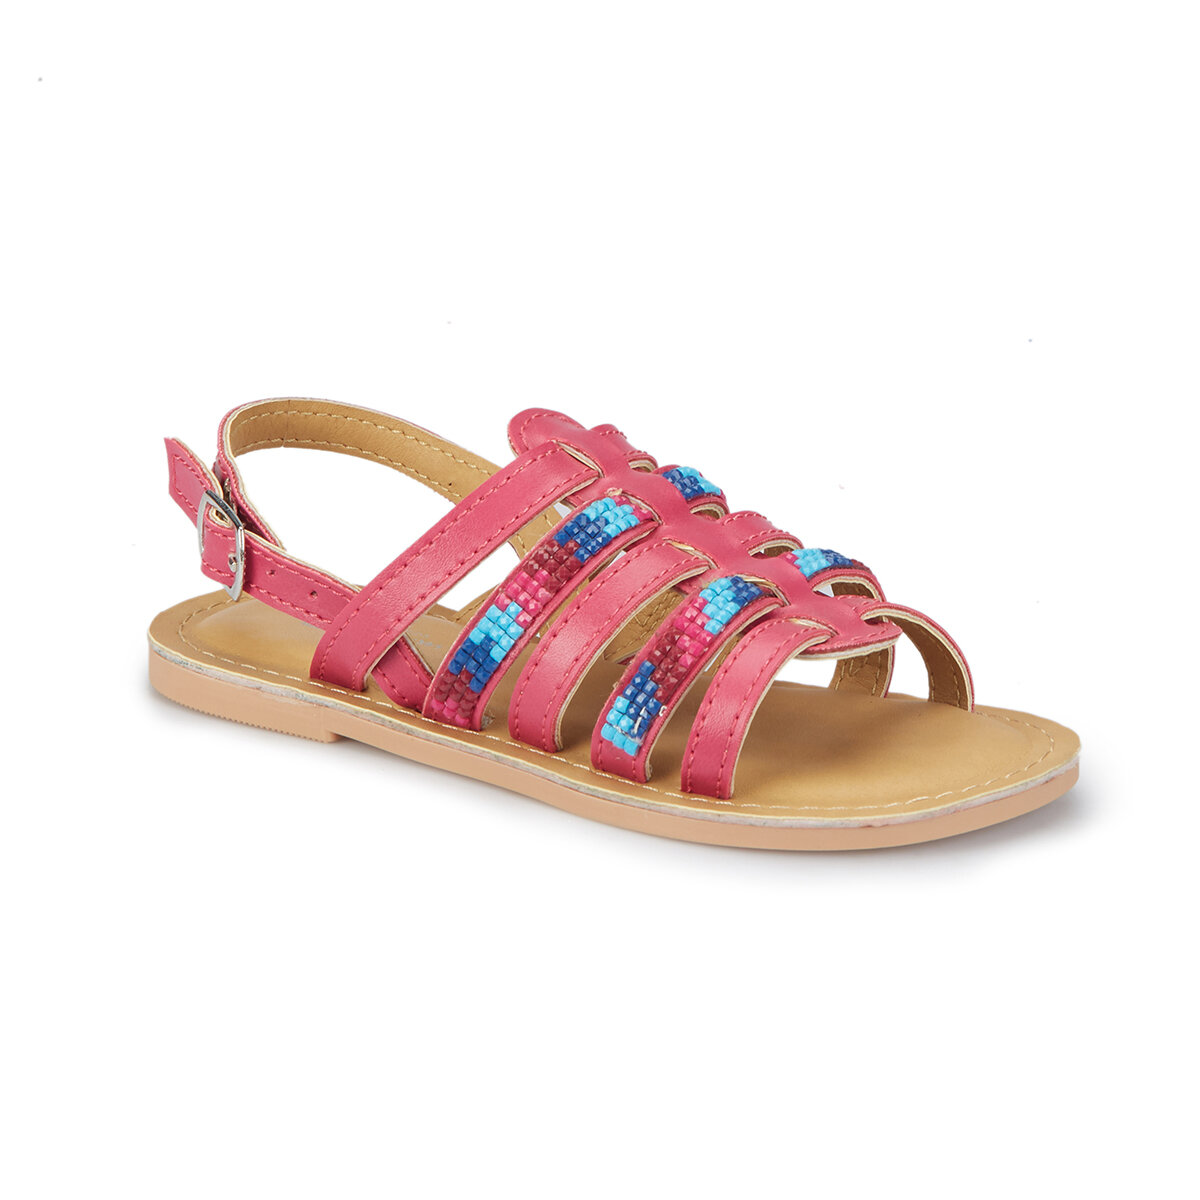 FLO ELONI Fuchsia Girls Child Sandals PINKSTEP